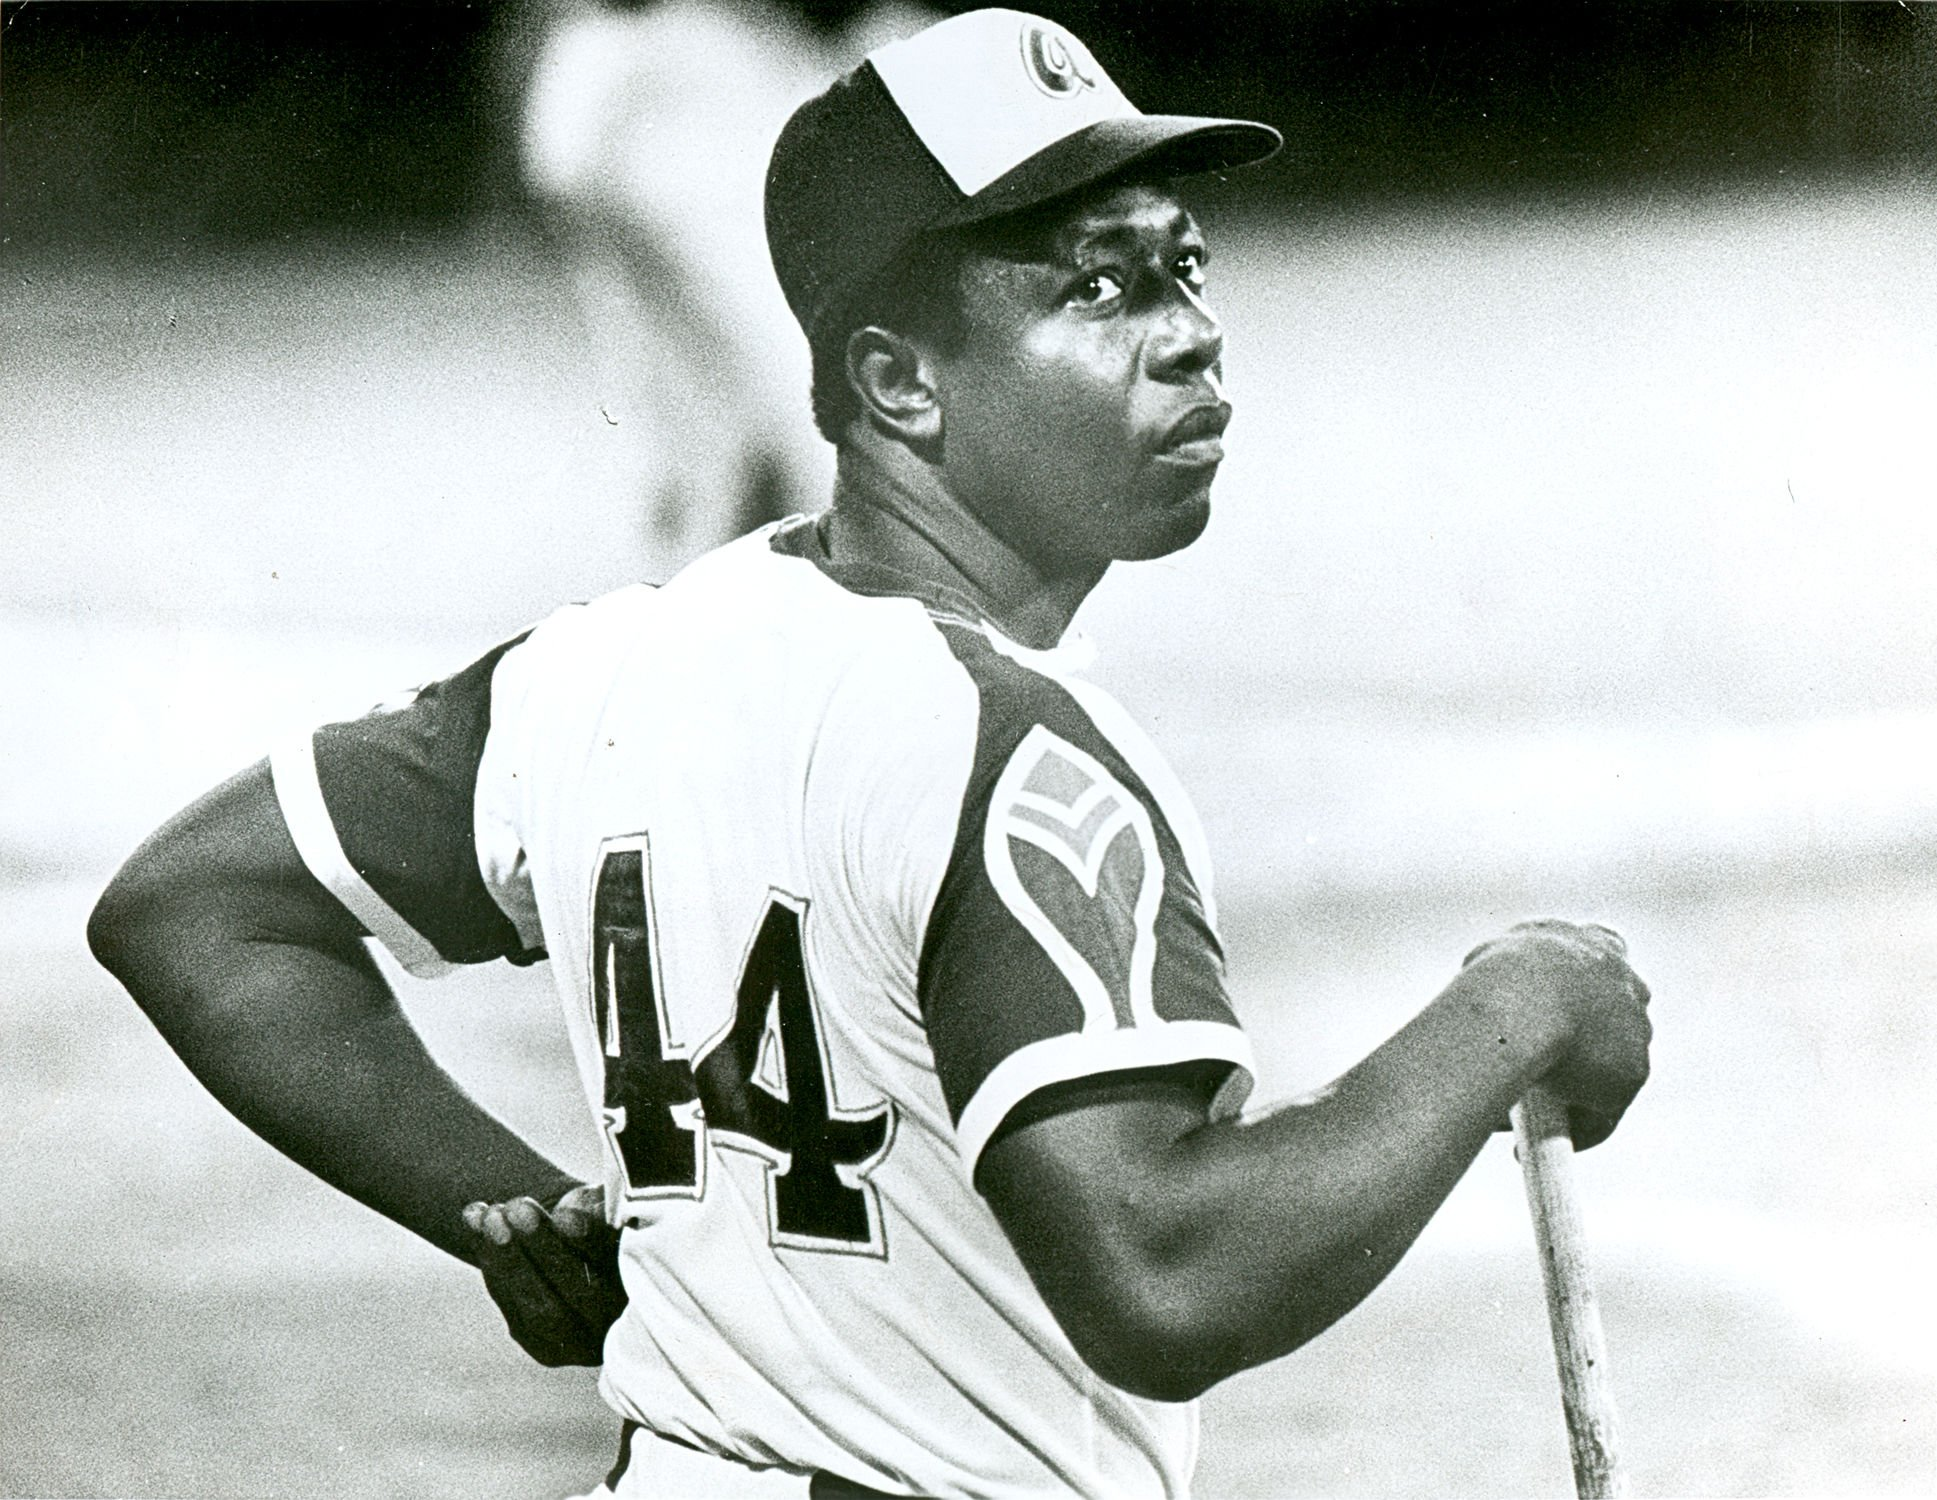 More About Hank Aaron's legacy